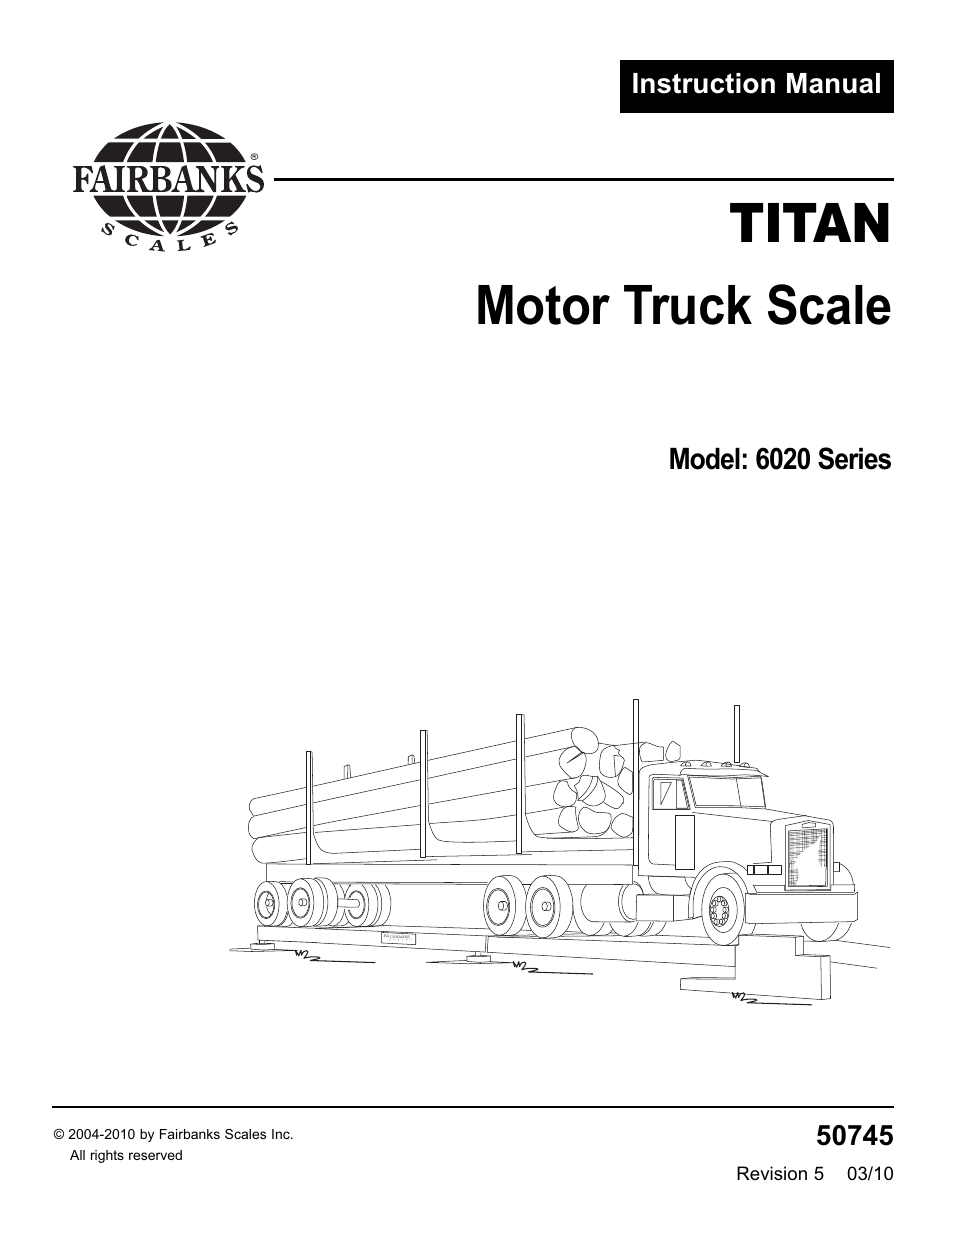 Fairbanks 6020 Series Titan Motor Truck Scale User Manual